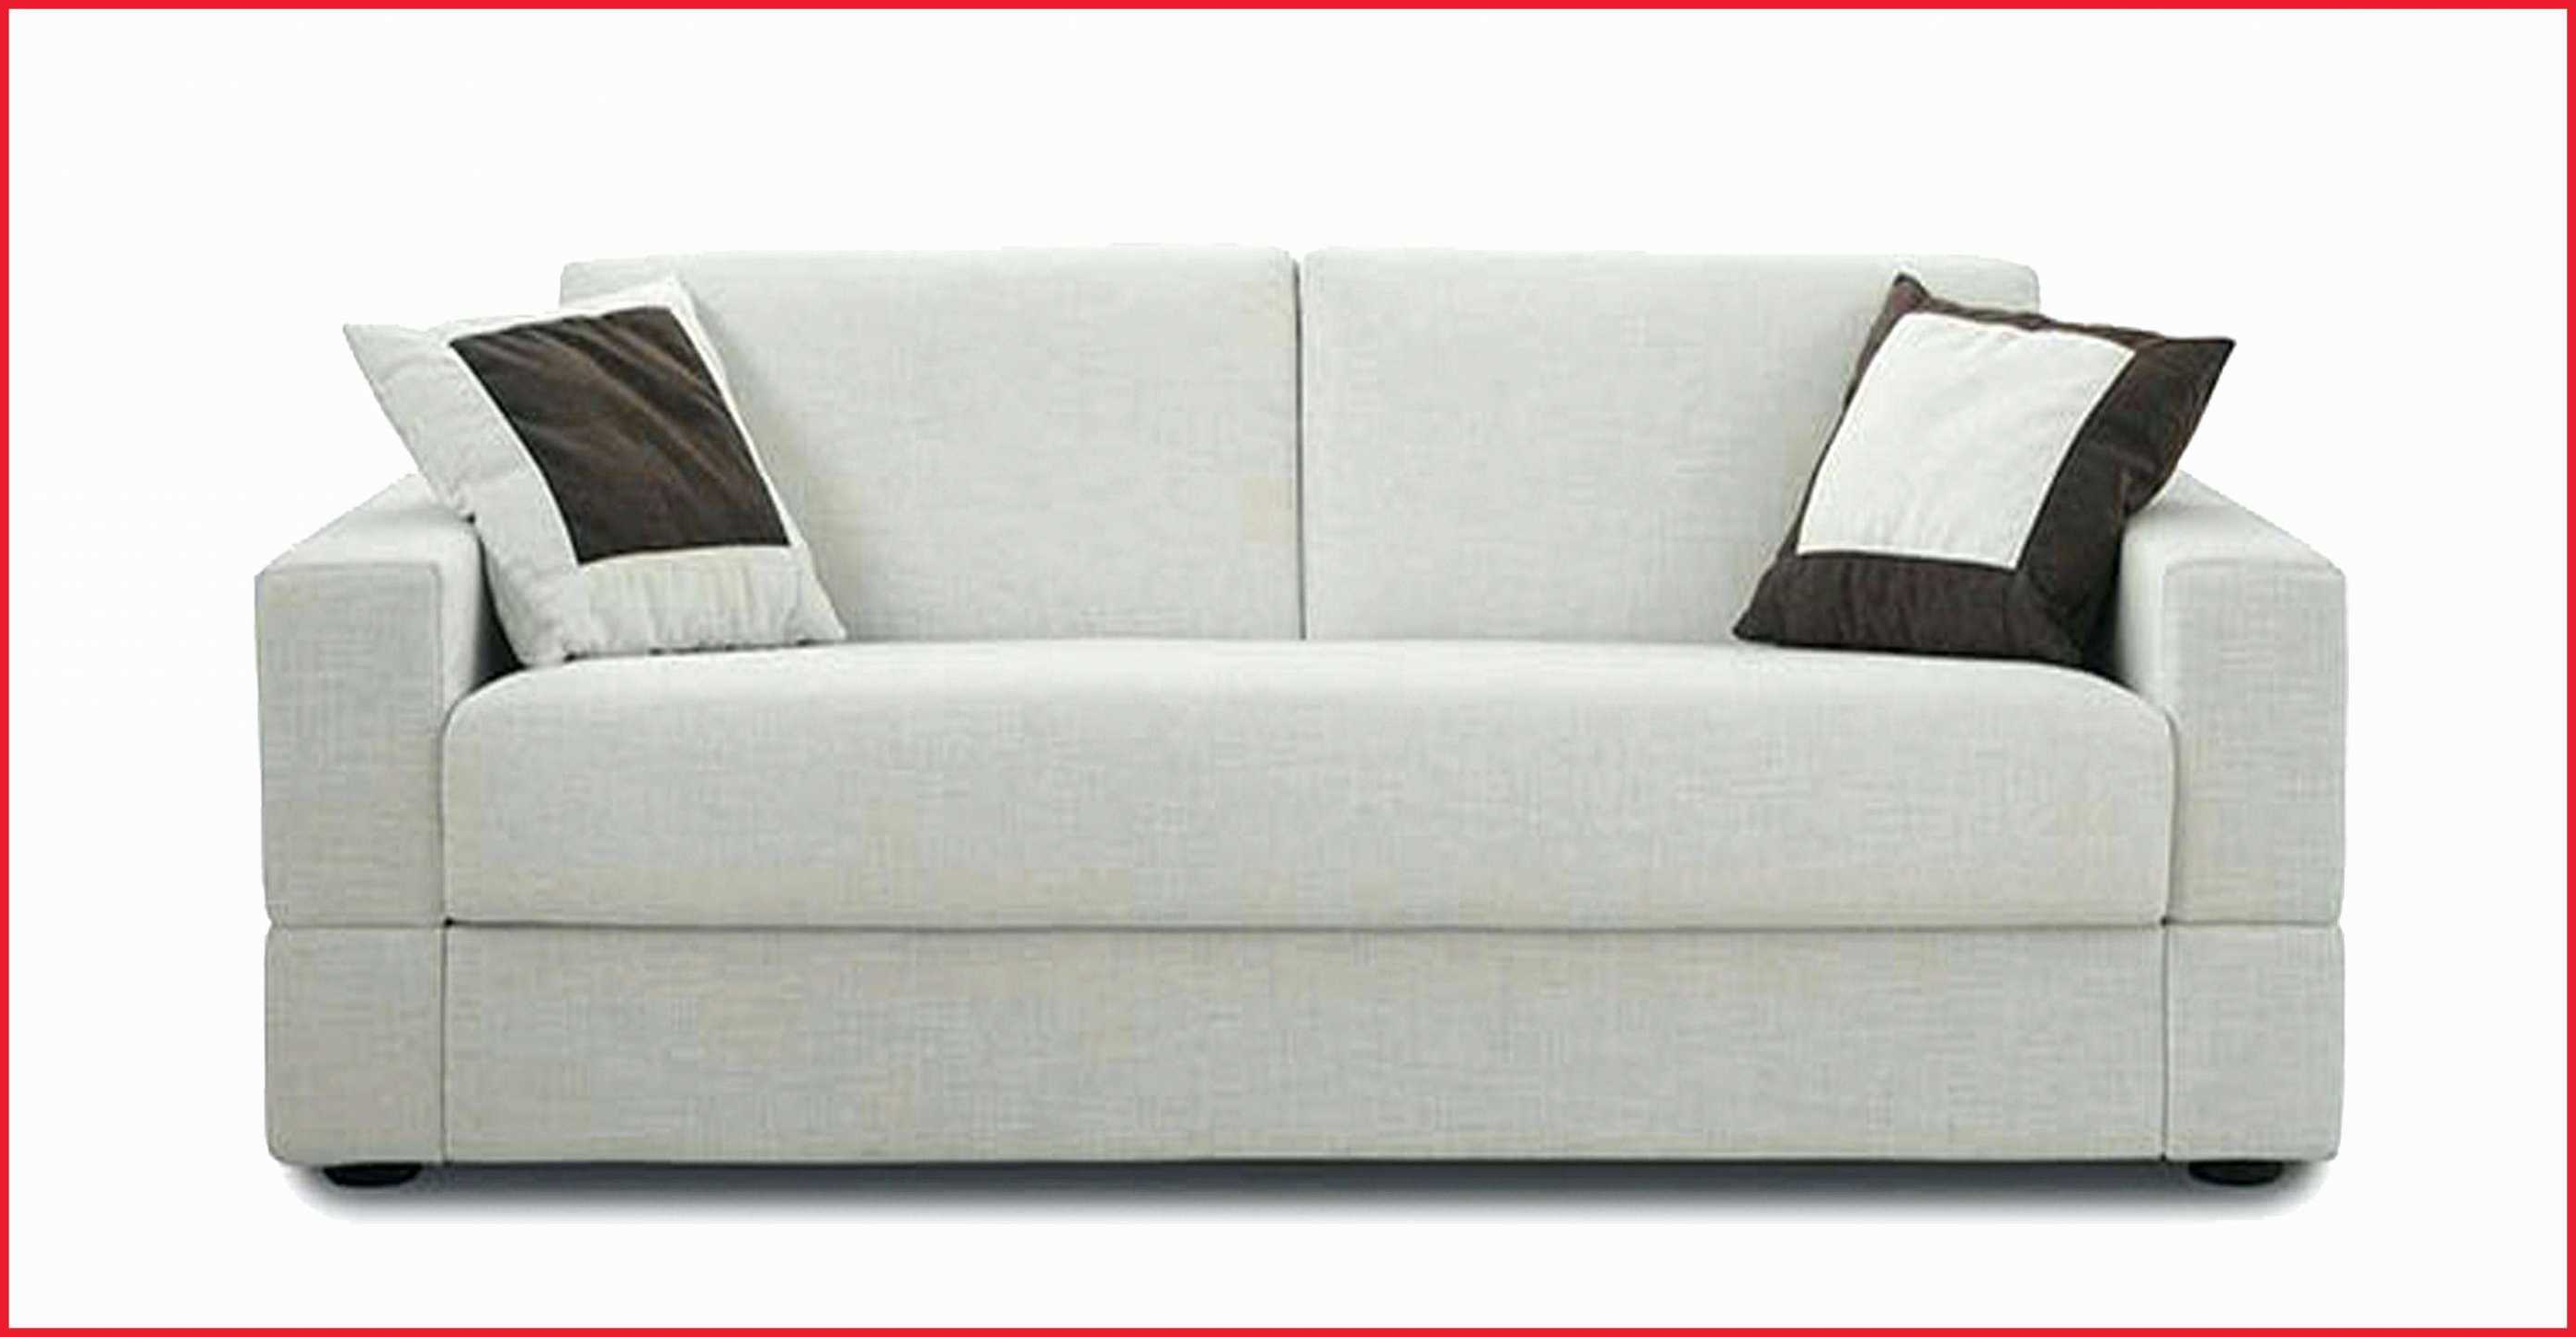 Carrefour sofas Cama Mndw sofa Cama Carrefour Beautiful sofas Cama Baratos En Carrefour Fresh